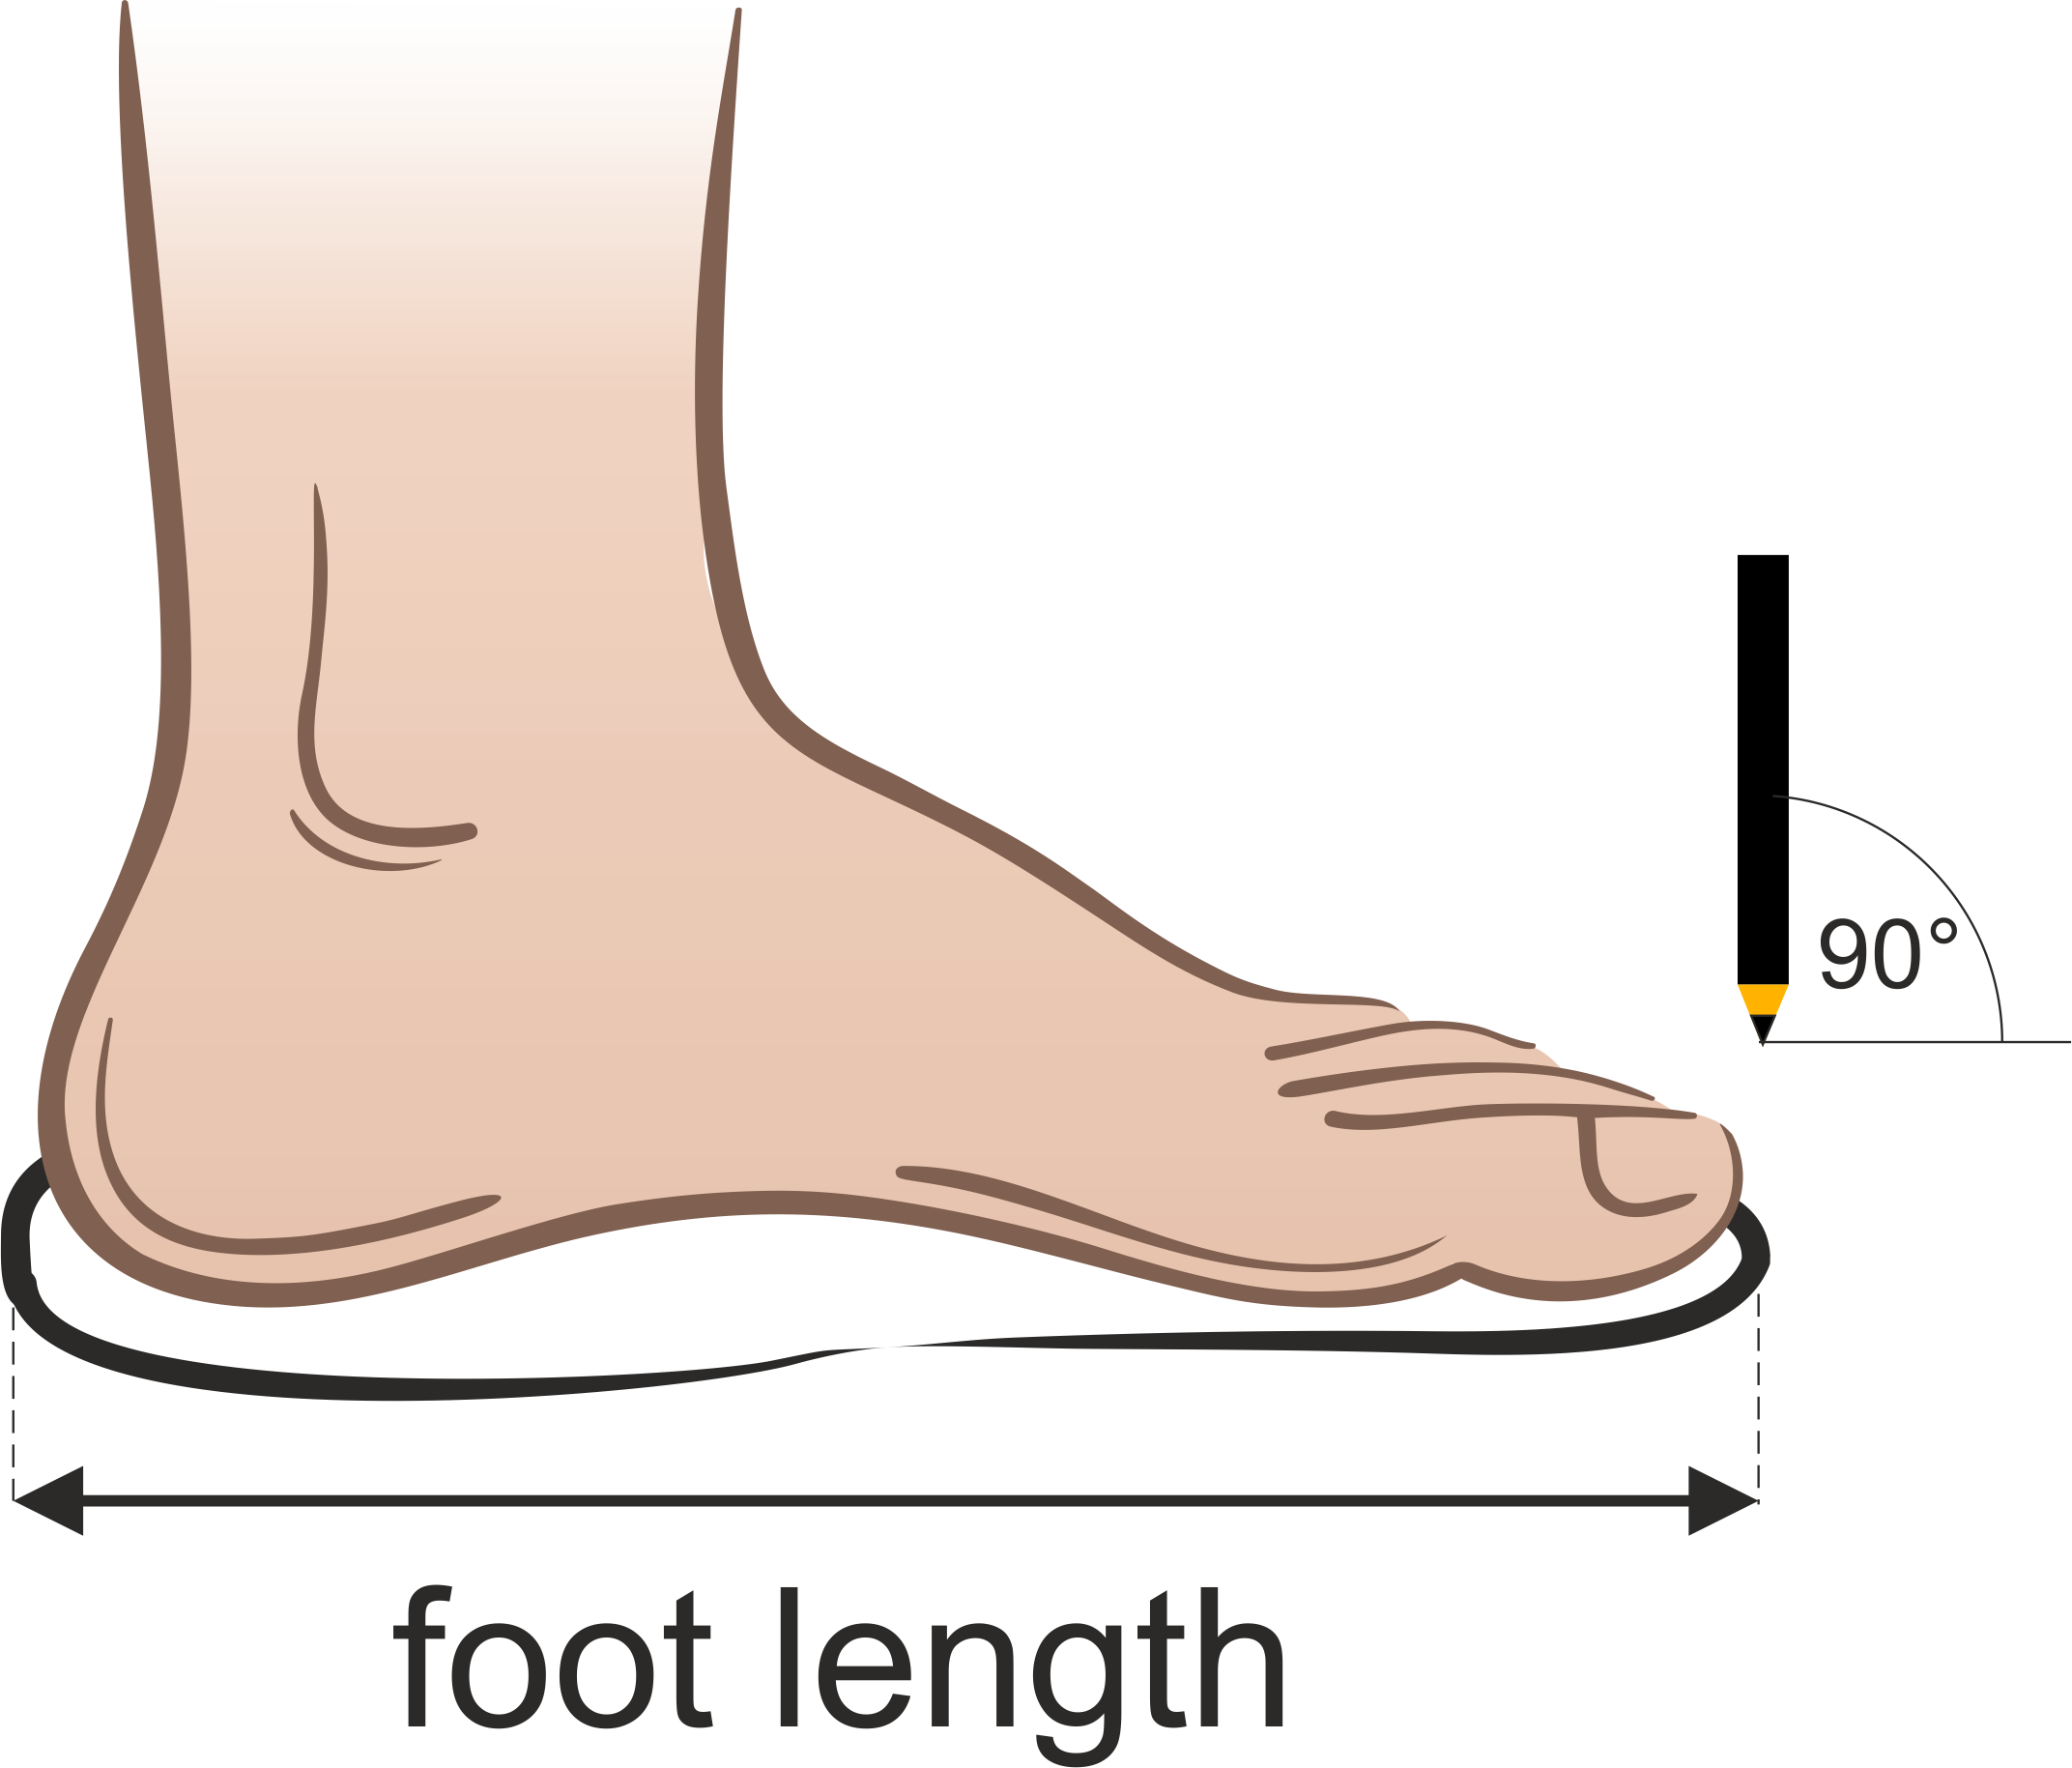 foot length measurement